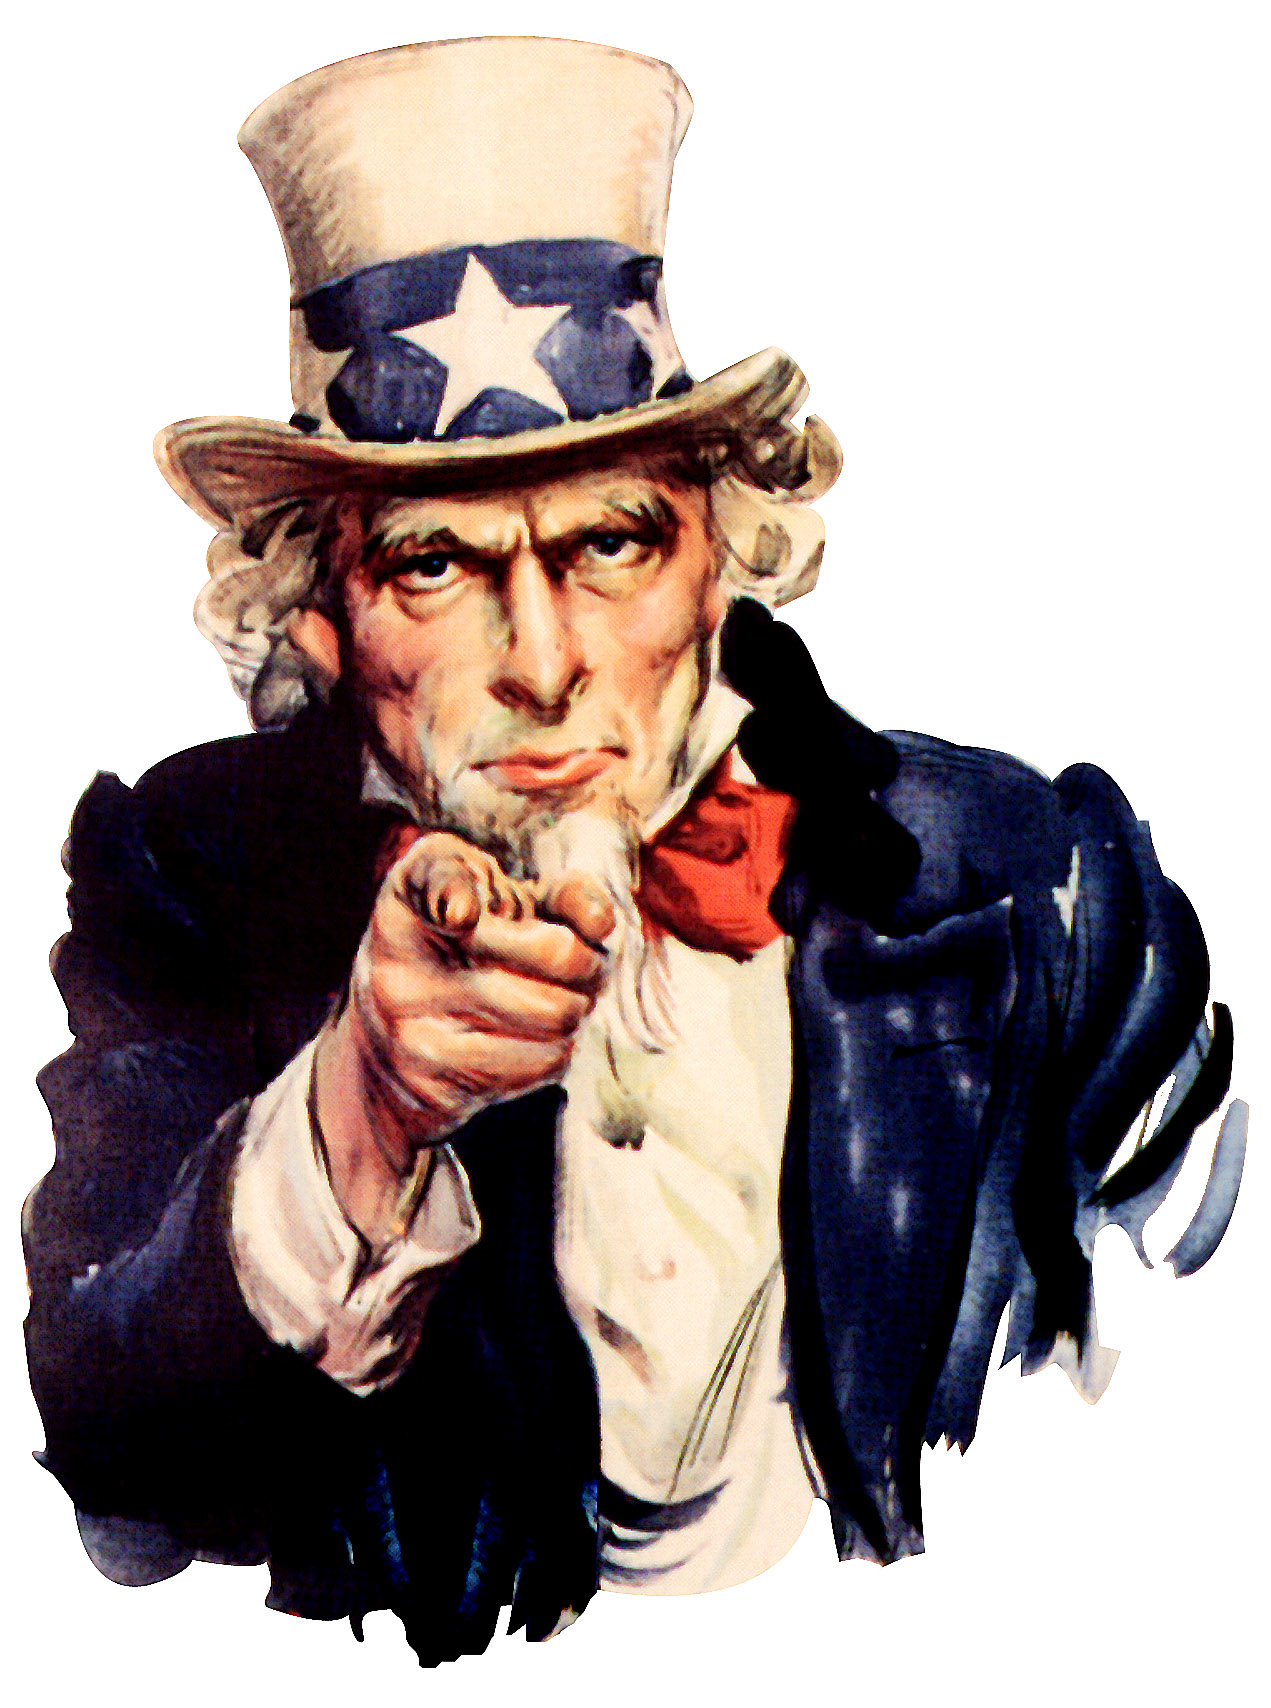 http://upload.wikimedia.org/wikipedia/commons/d/df/Uncle_Sam_(pointing_finger).png